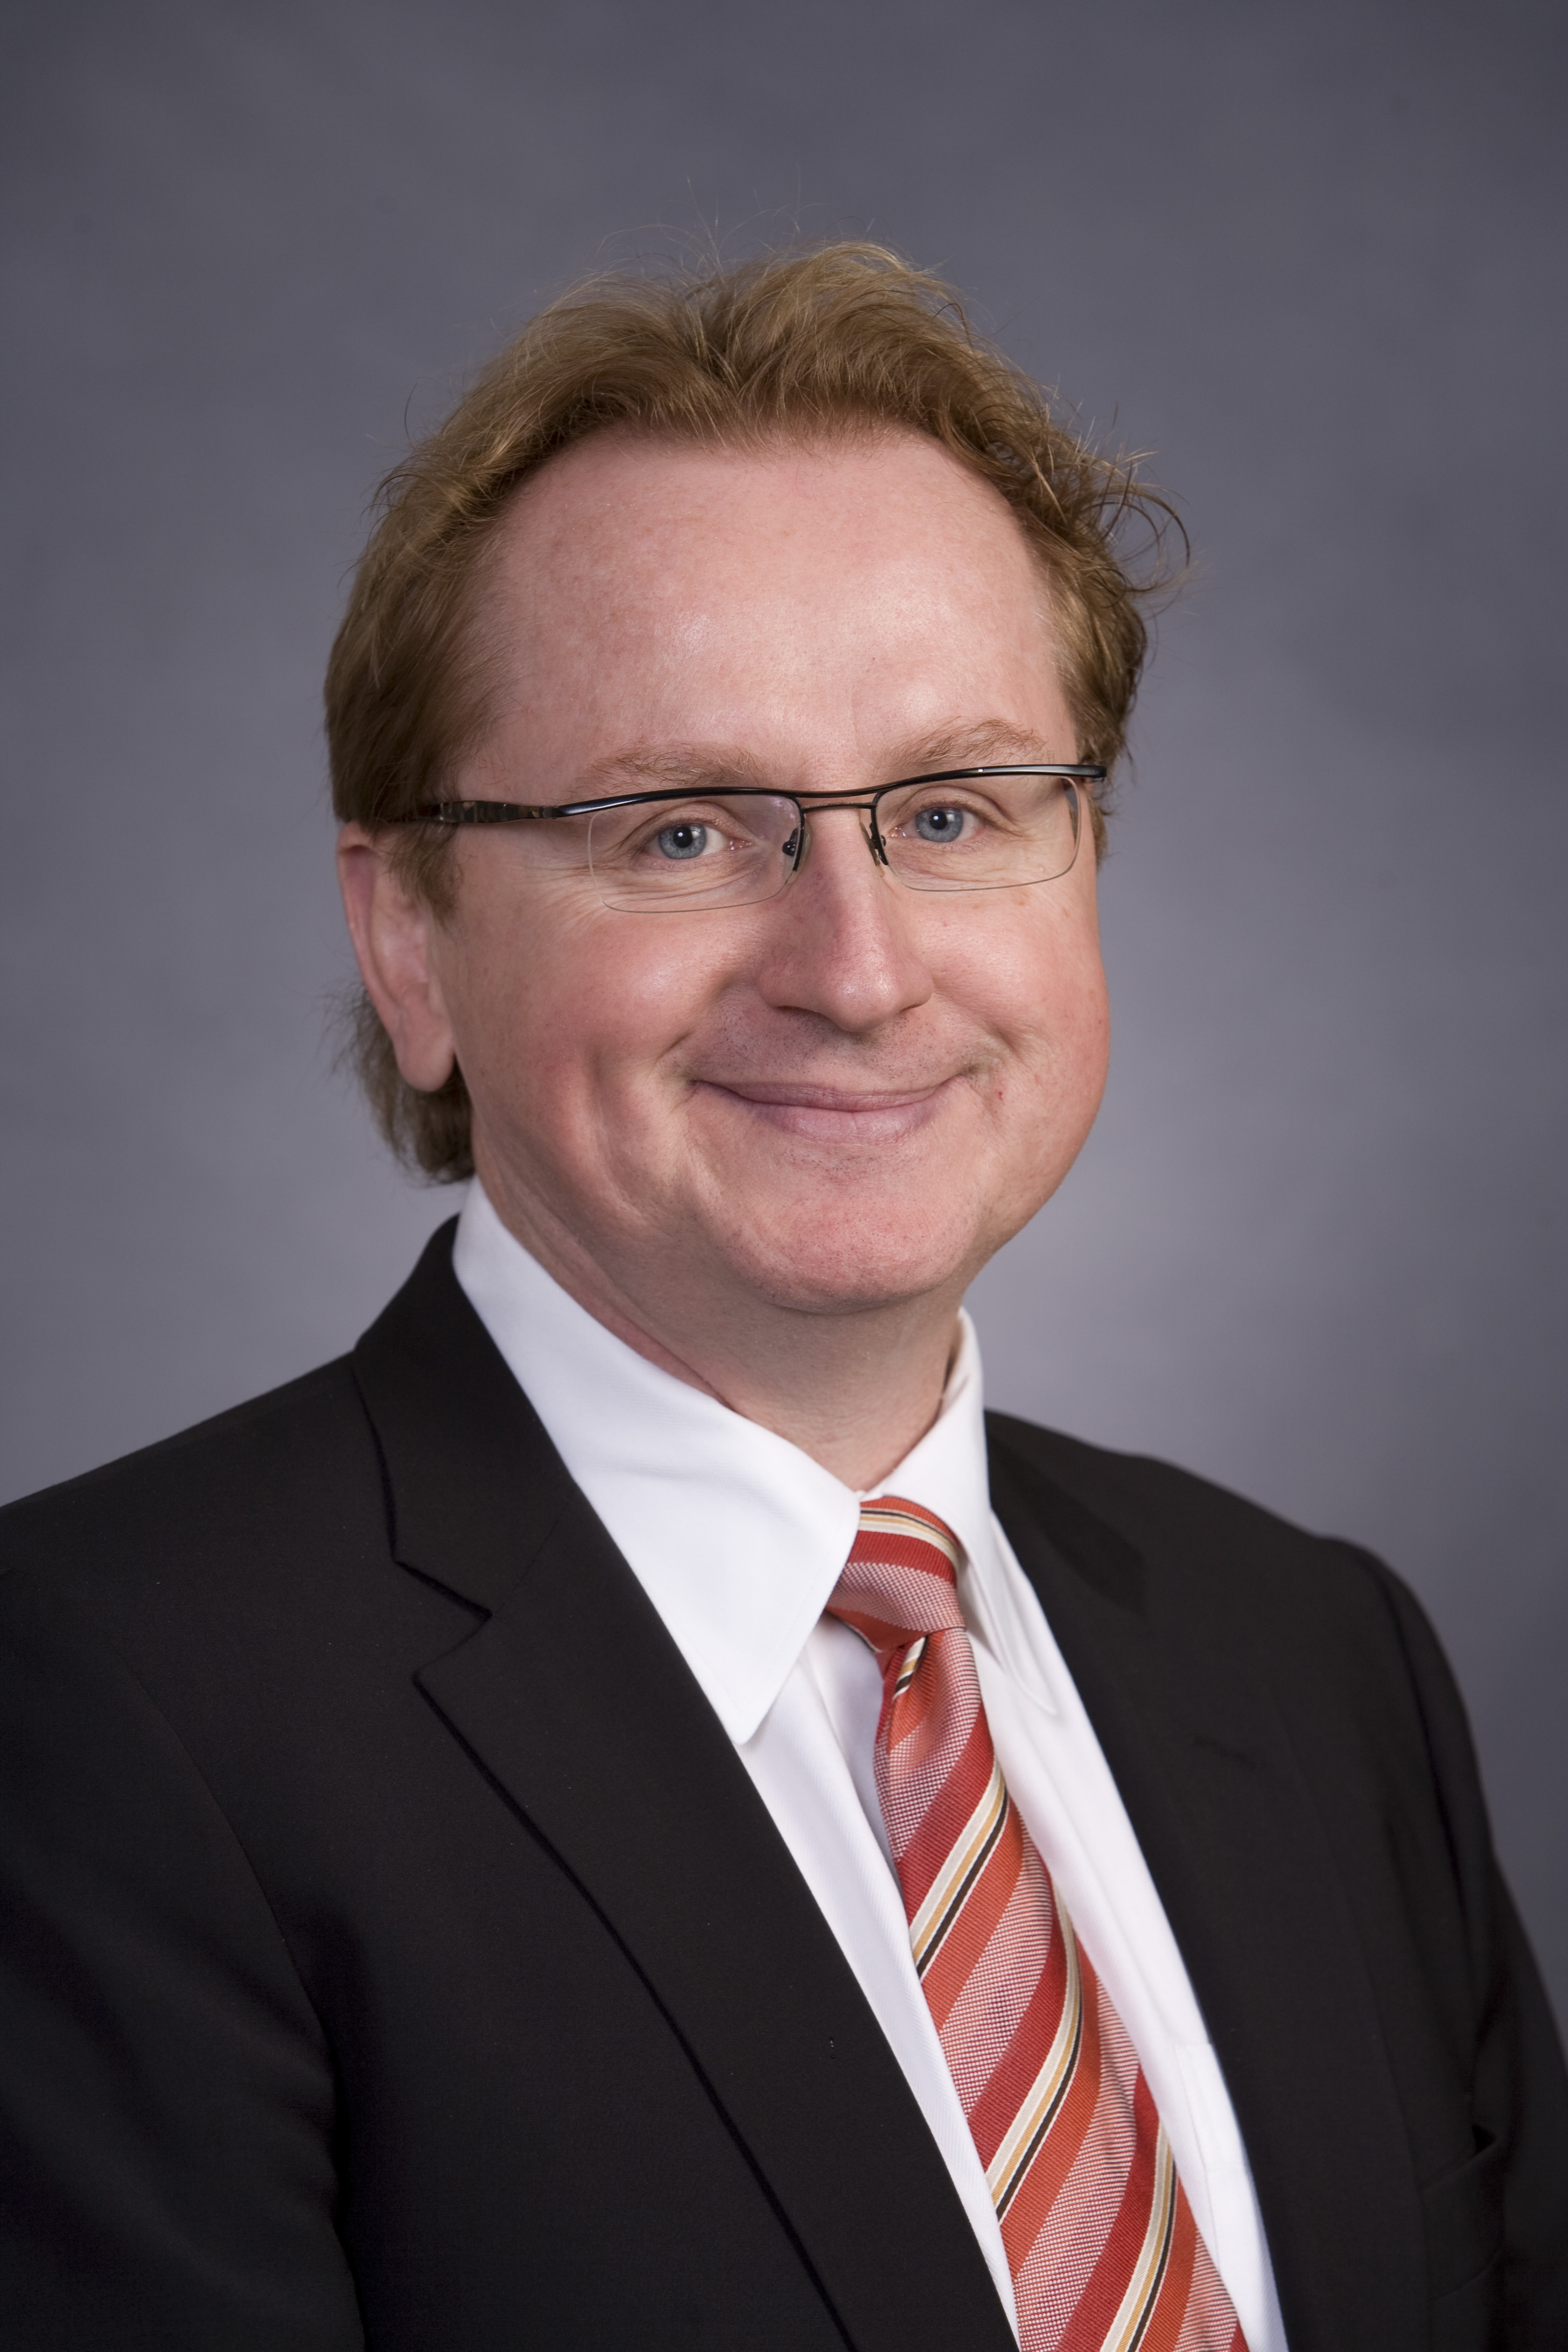 Steve A. Kay is the new dean of USC Dornsife